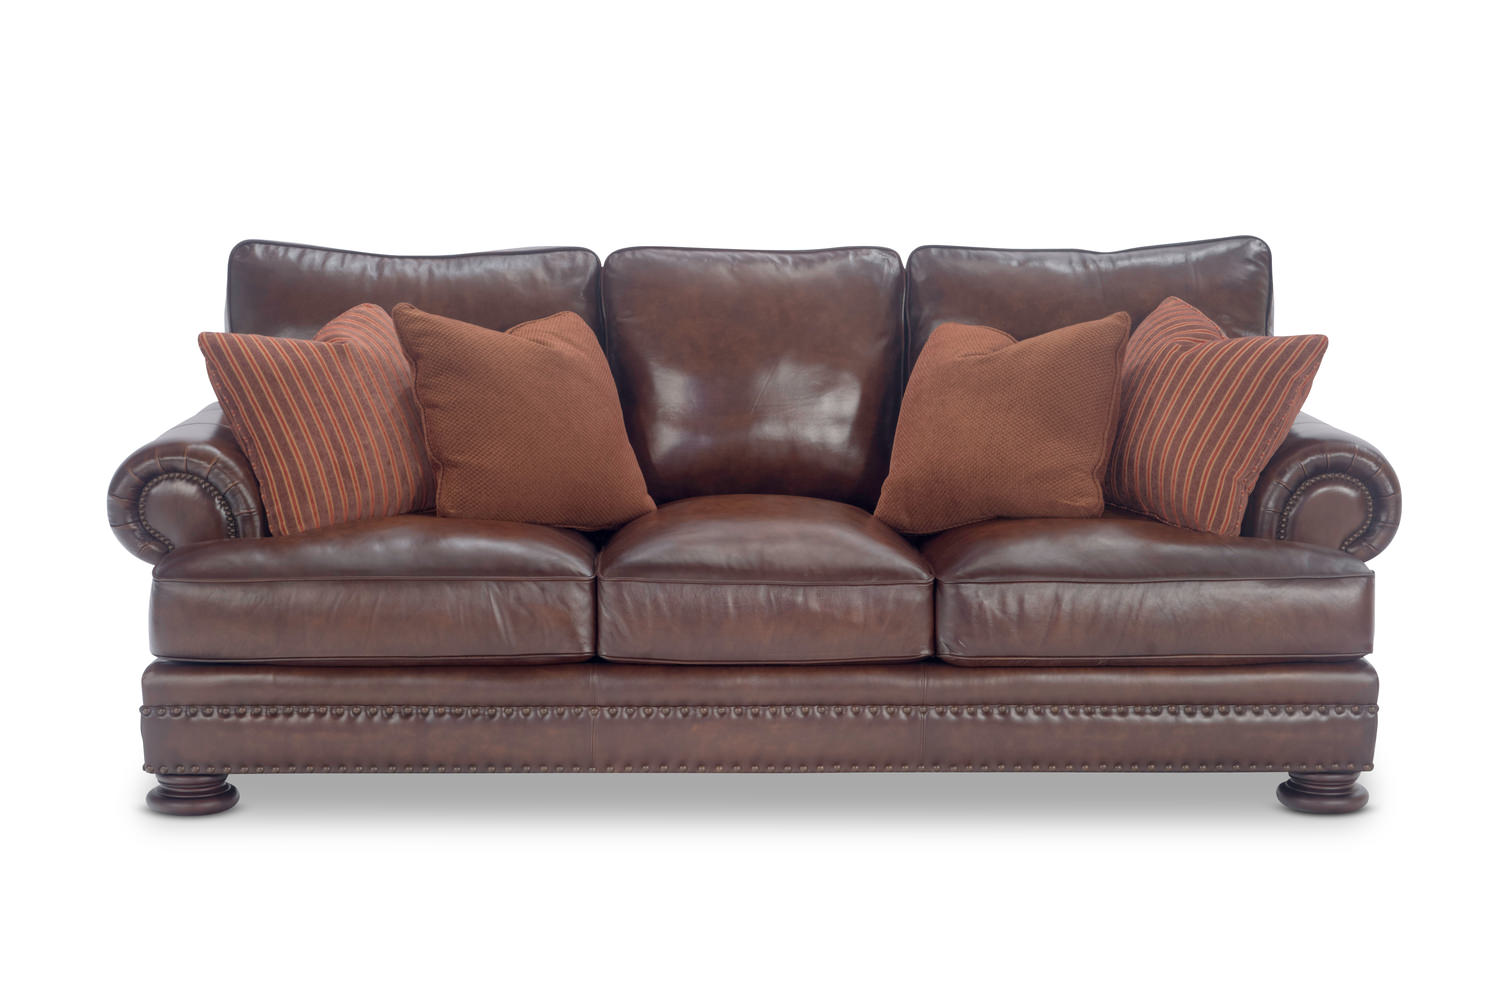 Bernhardt Foster Leather Sectional Sofa in addition Rustic Log Cabin Bathroom Ideas as well Scottish Hunting Lodge Interiors in addition White Round Pedestal End Table together with Bathroom With Waterfall. on lodge decor living room